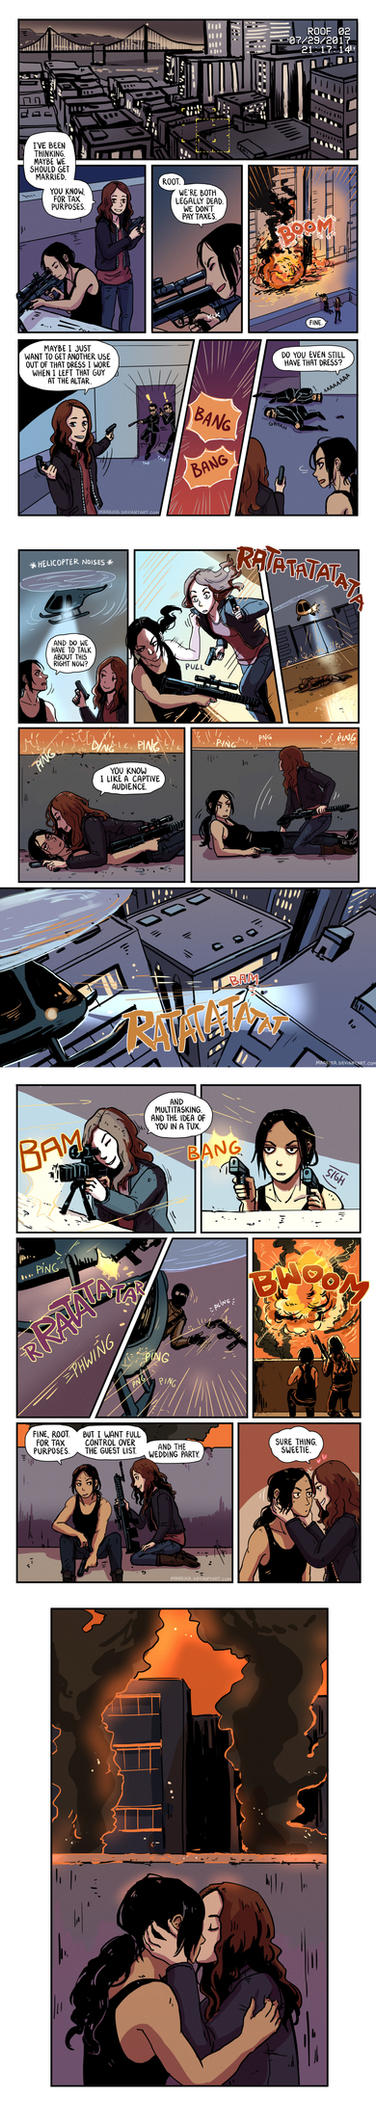 Person of Interest - Root and Shaw comic 4 by Maarika